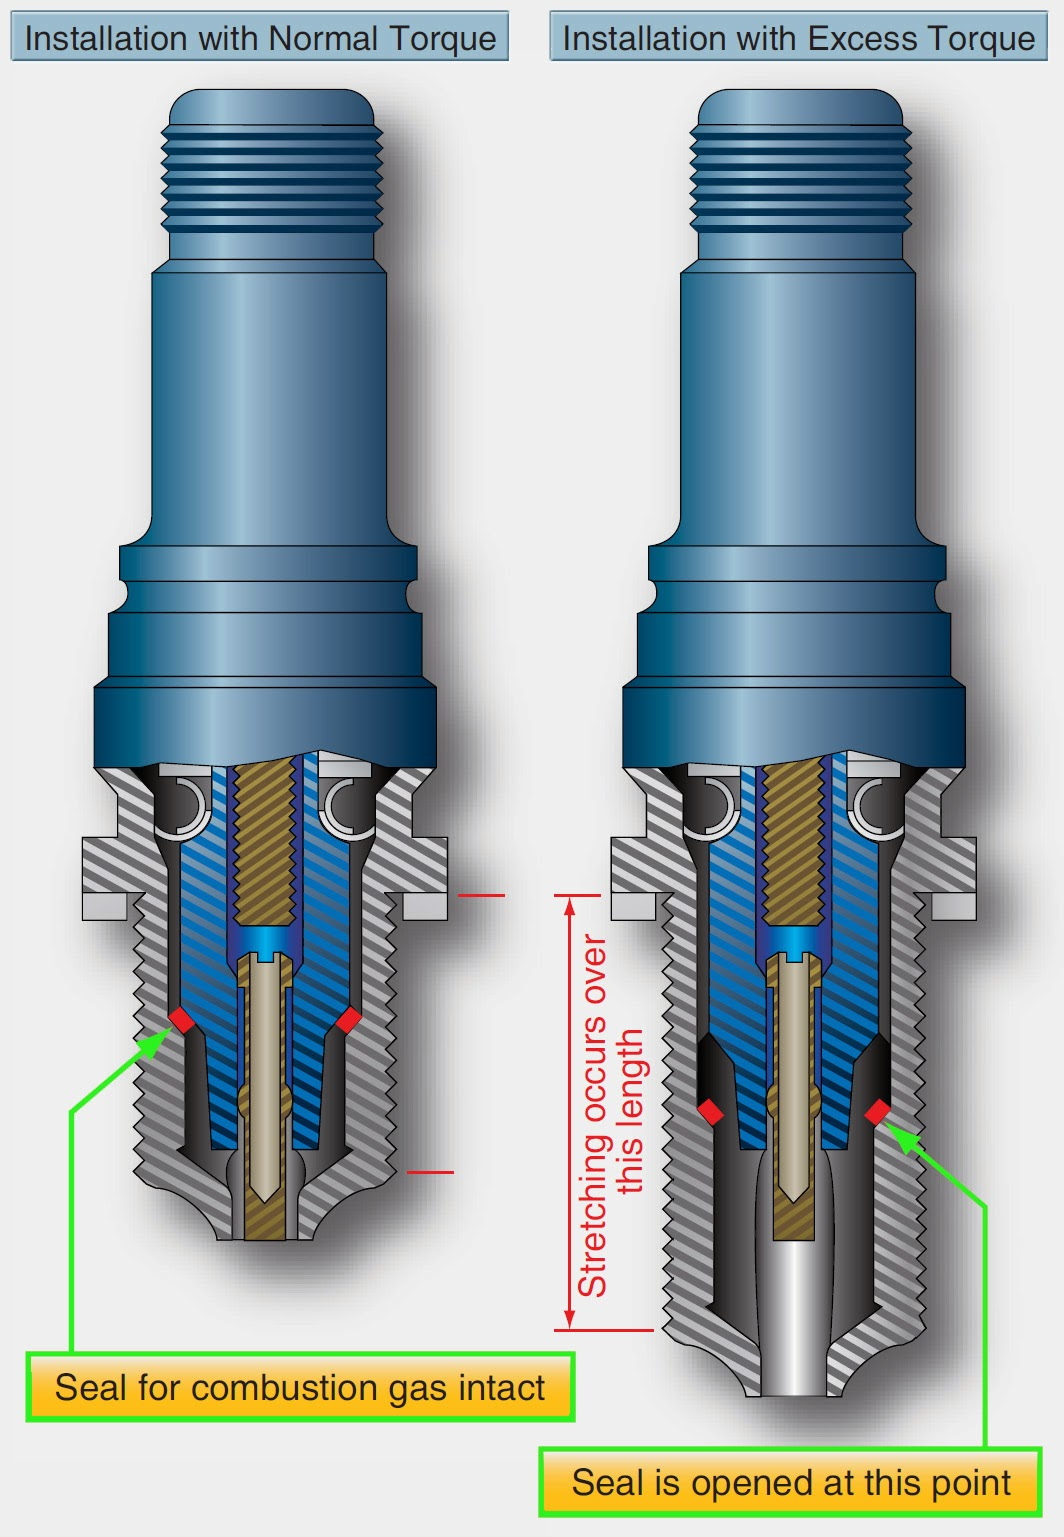 Aircraft Systems Spark Plug Inspection And Maintenance Engine Diagram Reciprocating